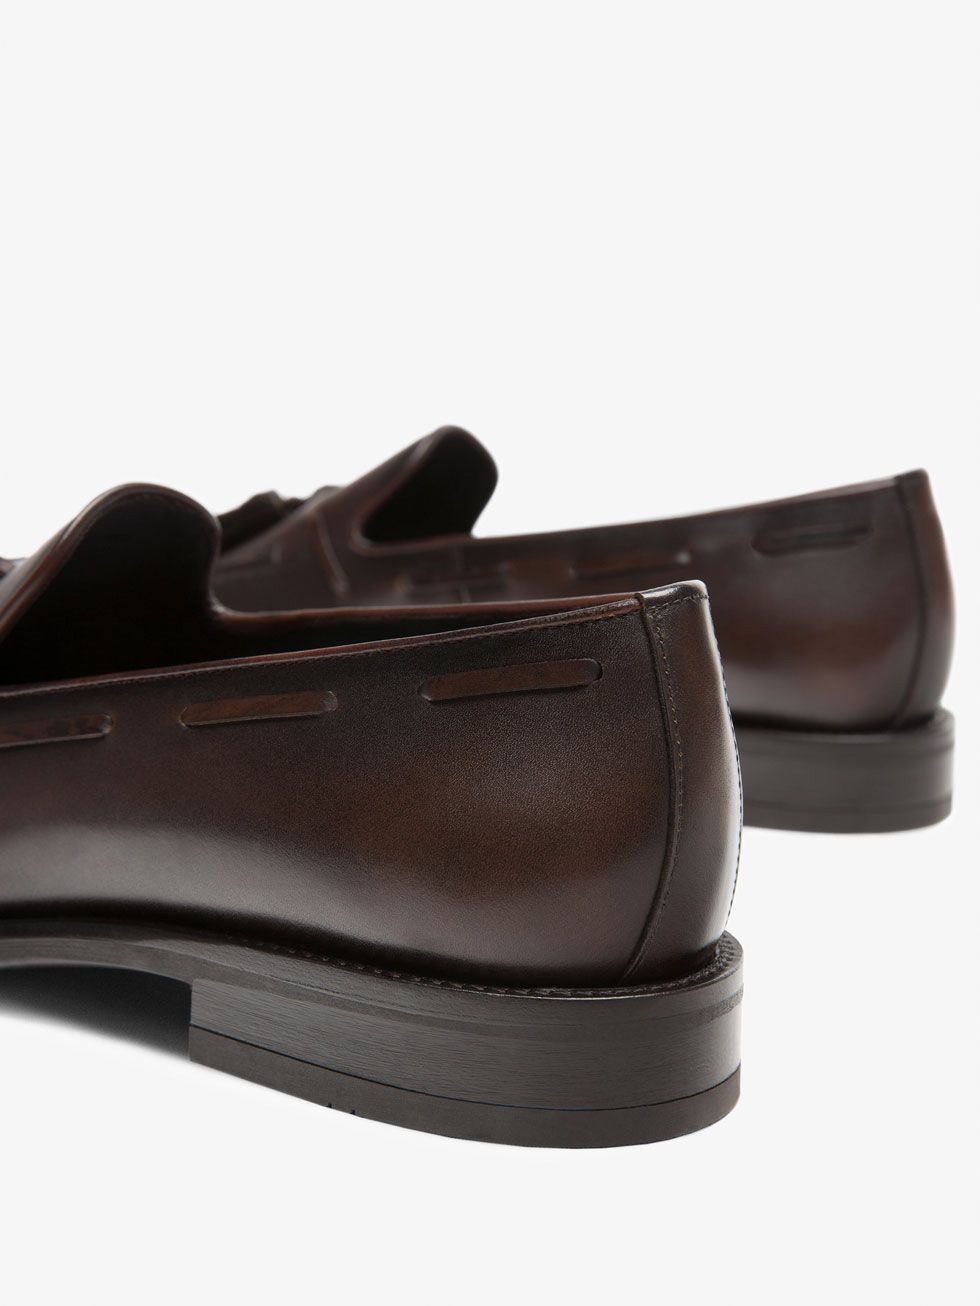 Barker Shoes Mocasines Clásicos Negro EU 43.5 (UK 9.5) Lpvv0XLbyN